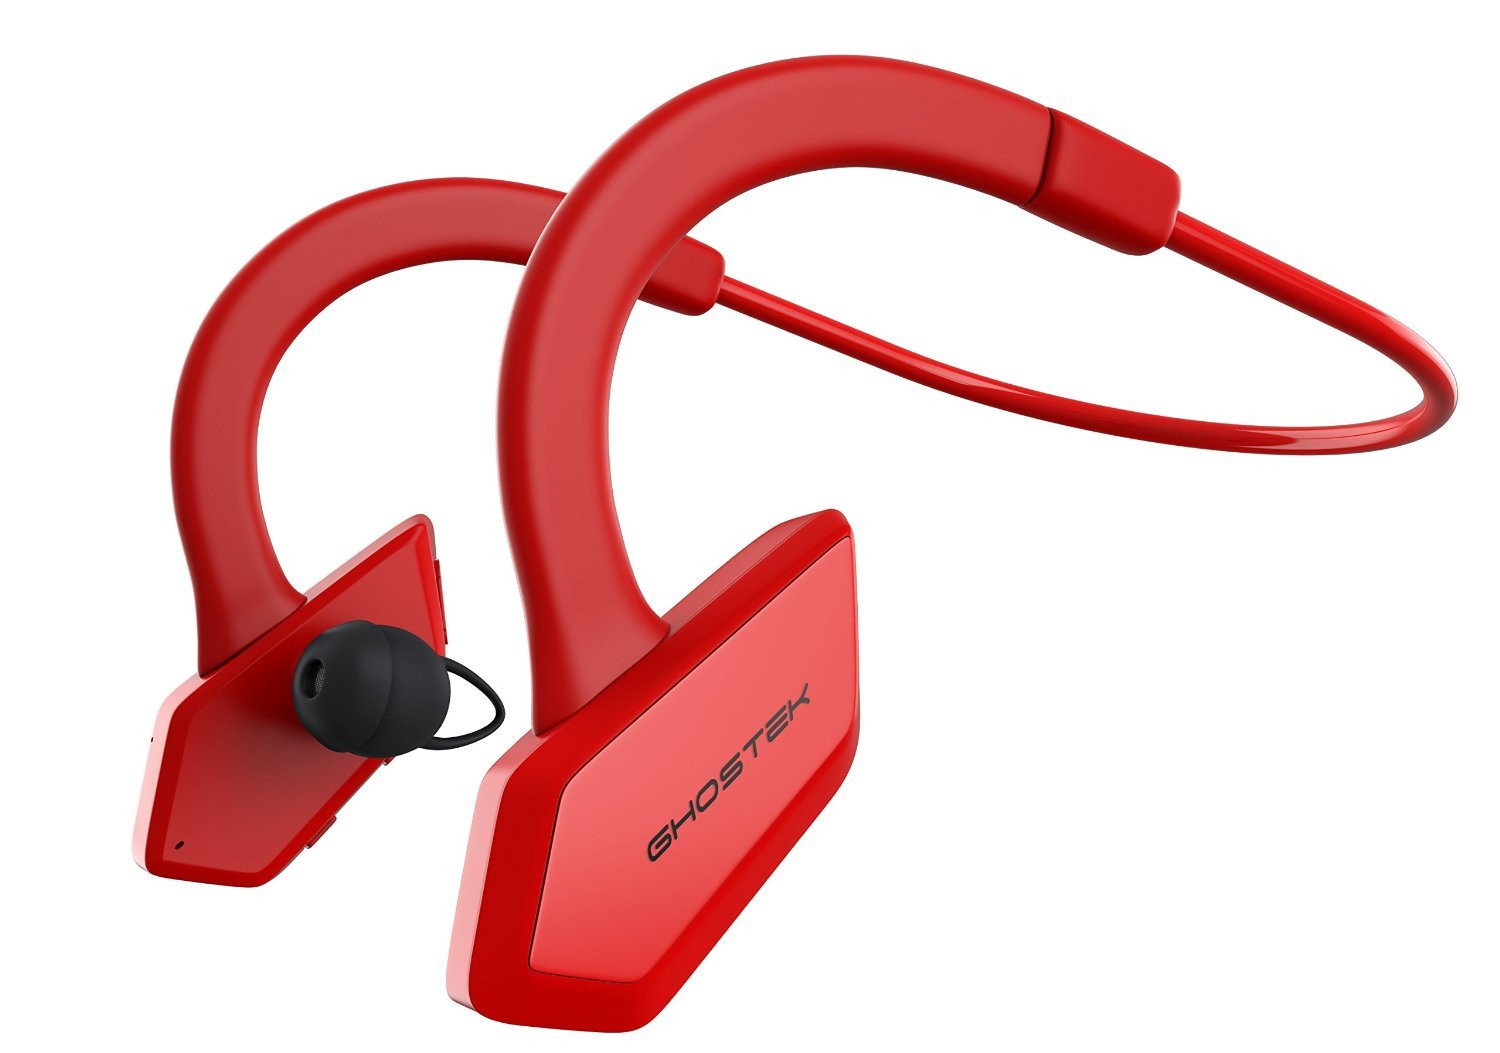 Headphones Bluetooth, Ghostek Earblades Red Sweatproof Bluetooth 4.1 Headphones Water Resistant